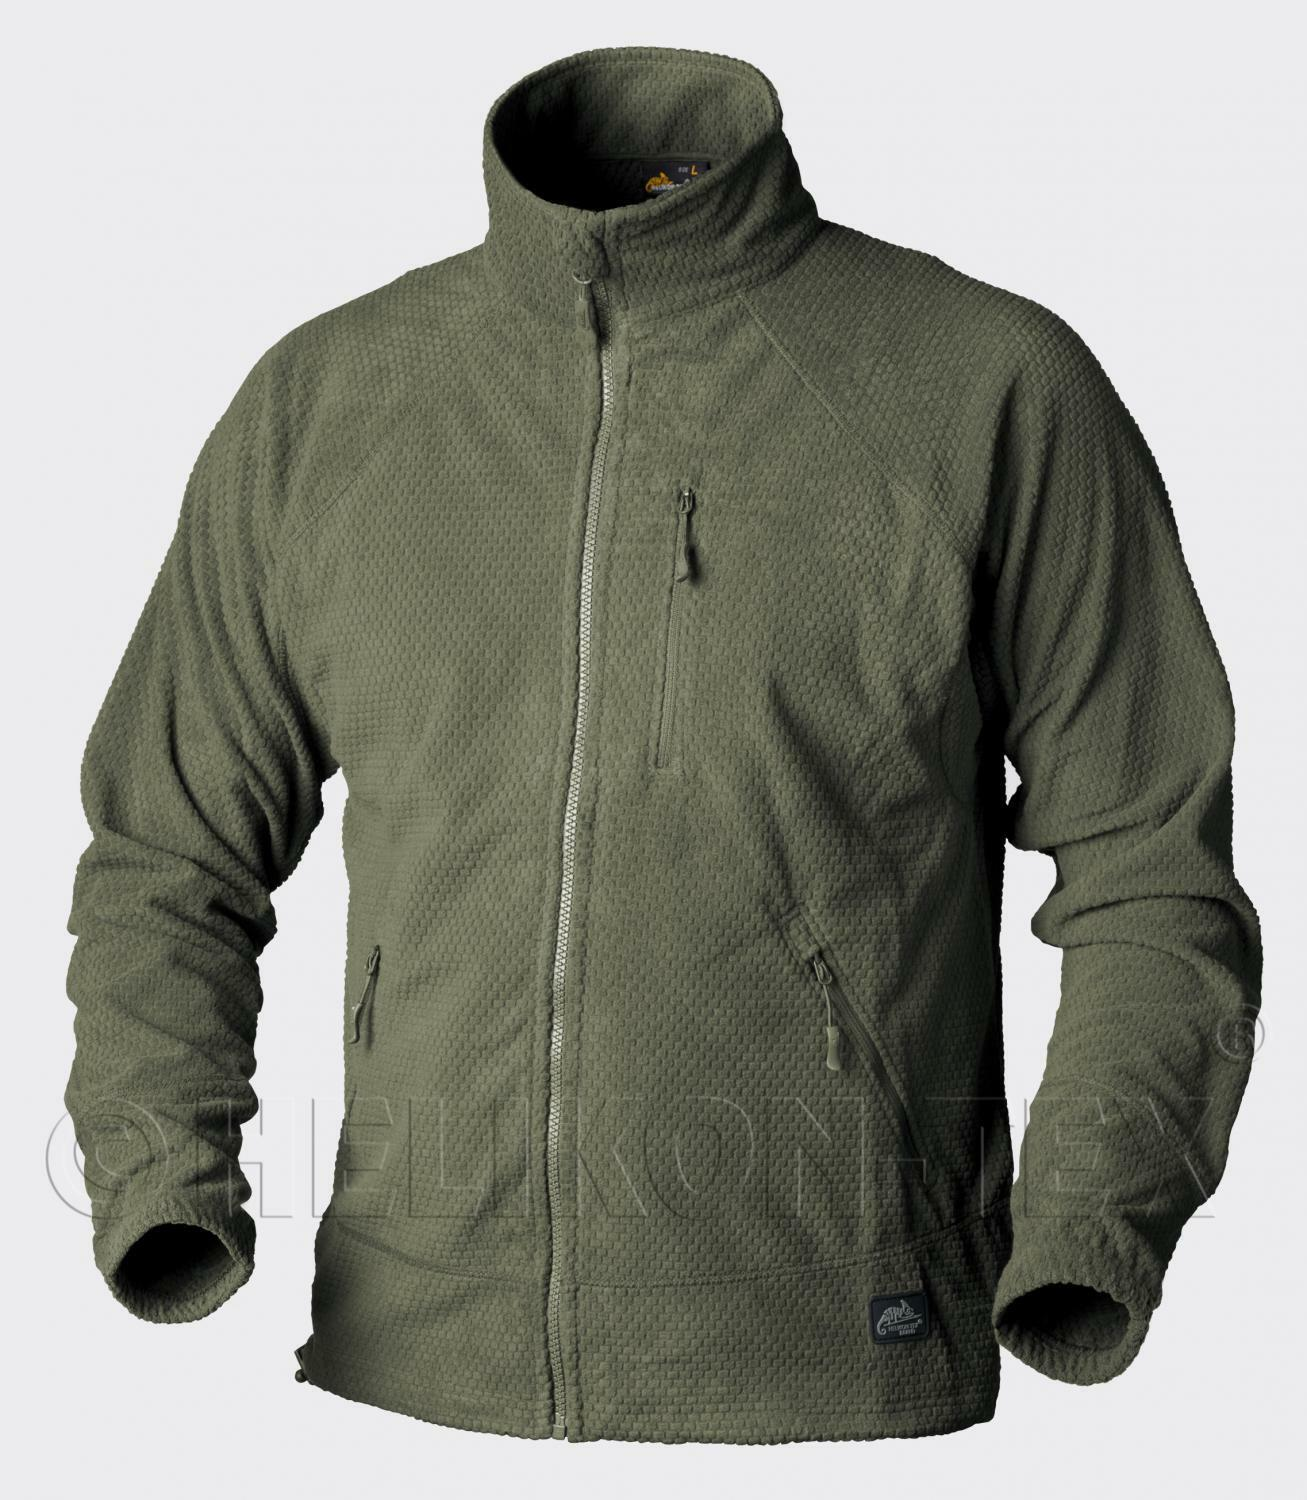 Helikon Tex Alpha Grid Outdoor Lightwight Giacca in Pile Jacket verde Oliva XL Xlarge